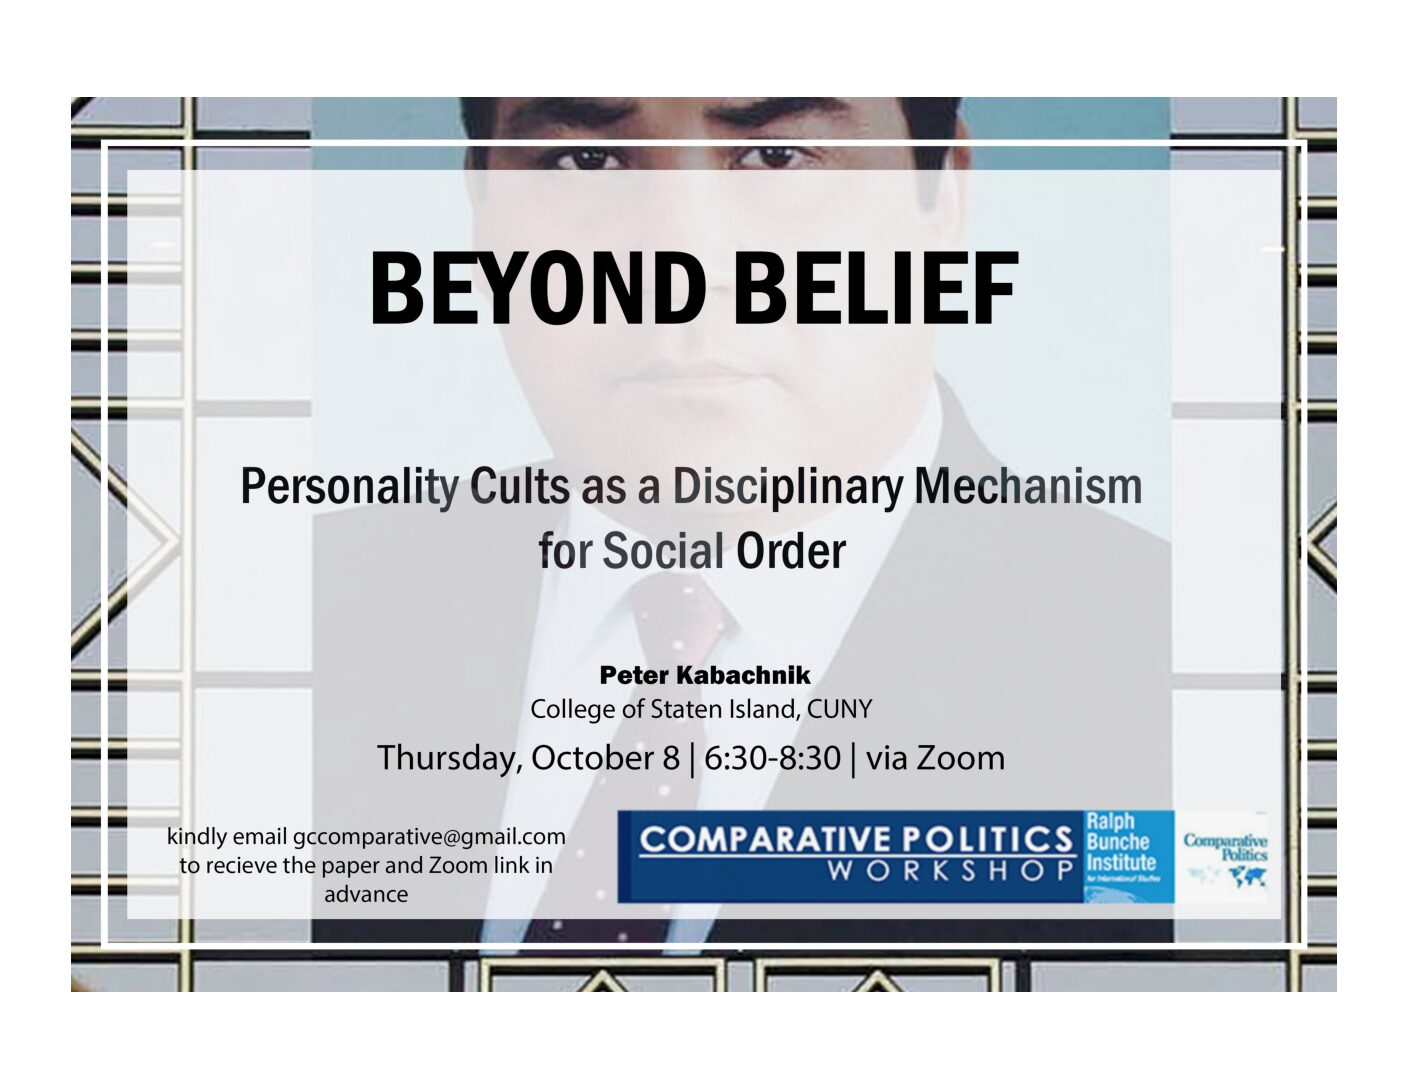 """CPW: Peter Kabachnik, """"Beyond Belief: Personality Cult Discourse as a Disciplinary Mechanism for Social Order"""" Thursday, October 8, 6:30PM"""